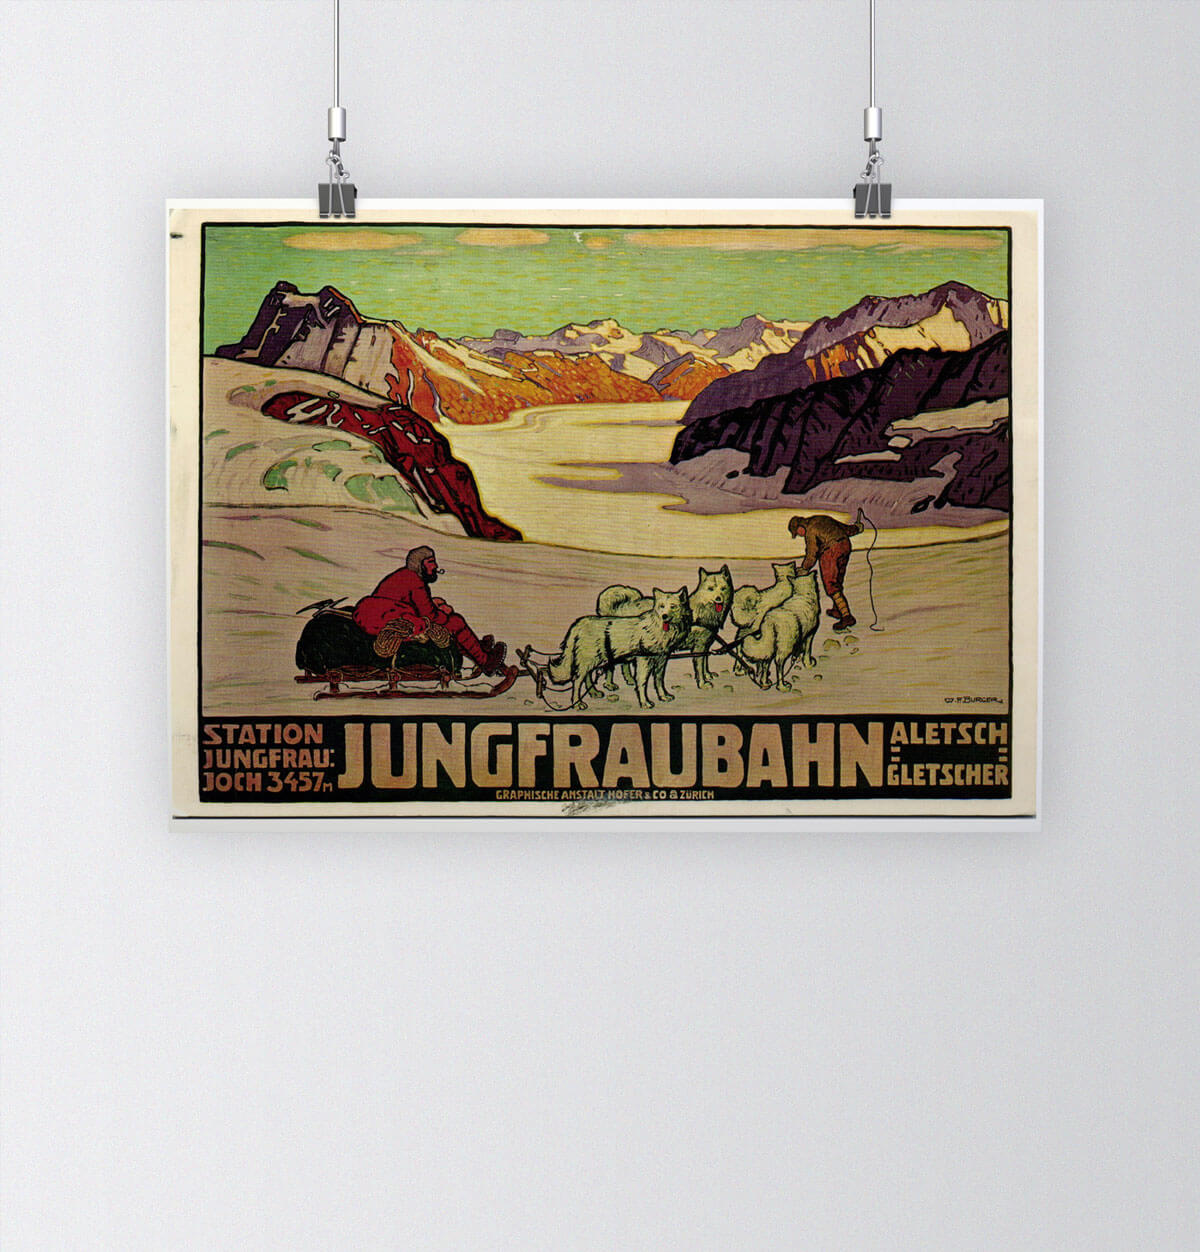 Tour of Switzerland - Vintage Posters - Jungfrau